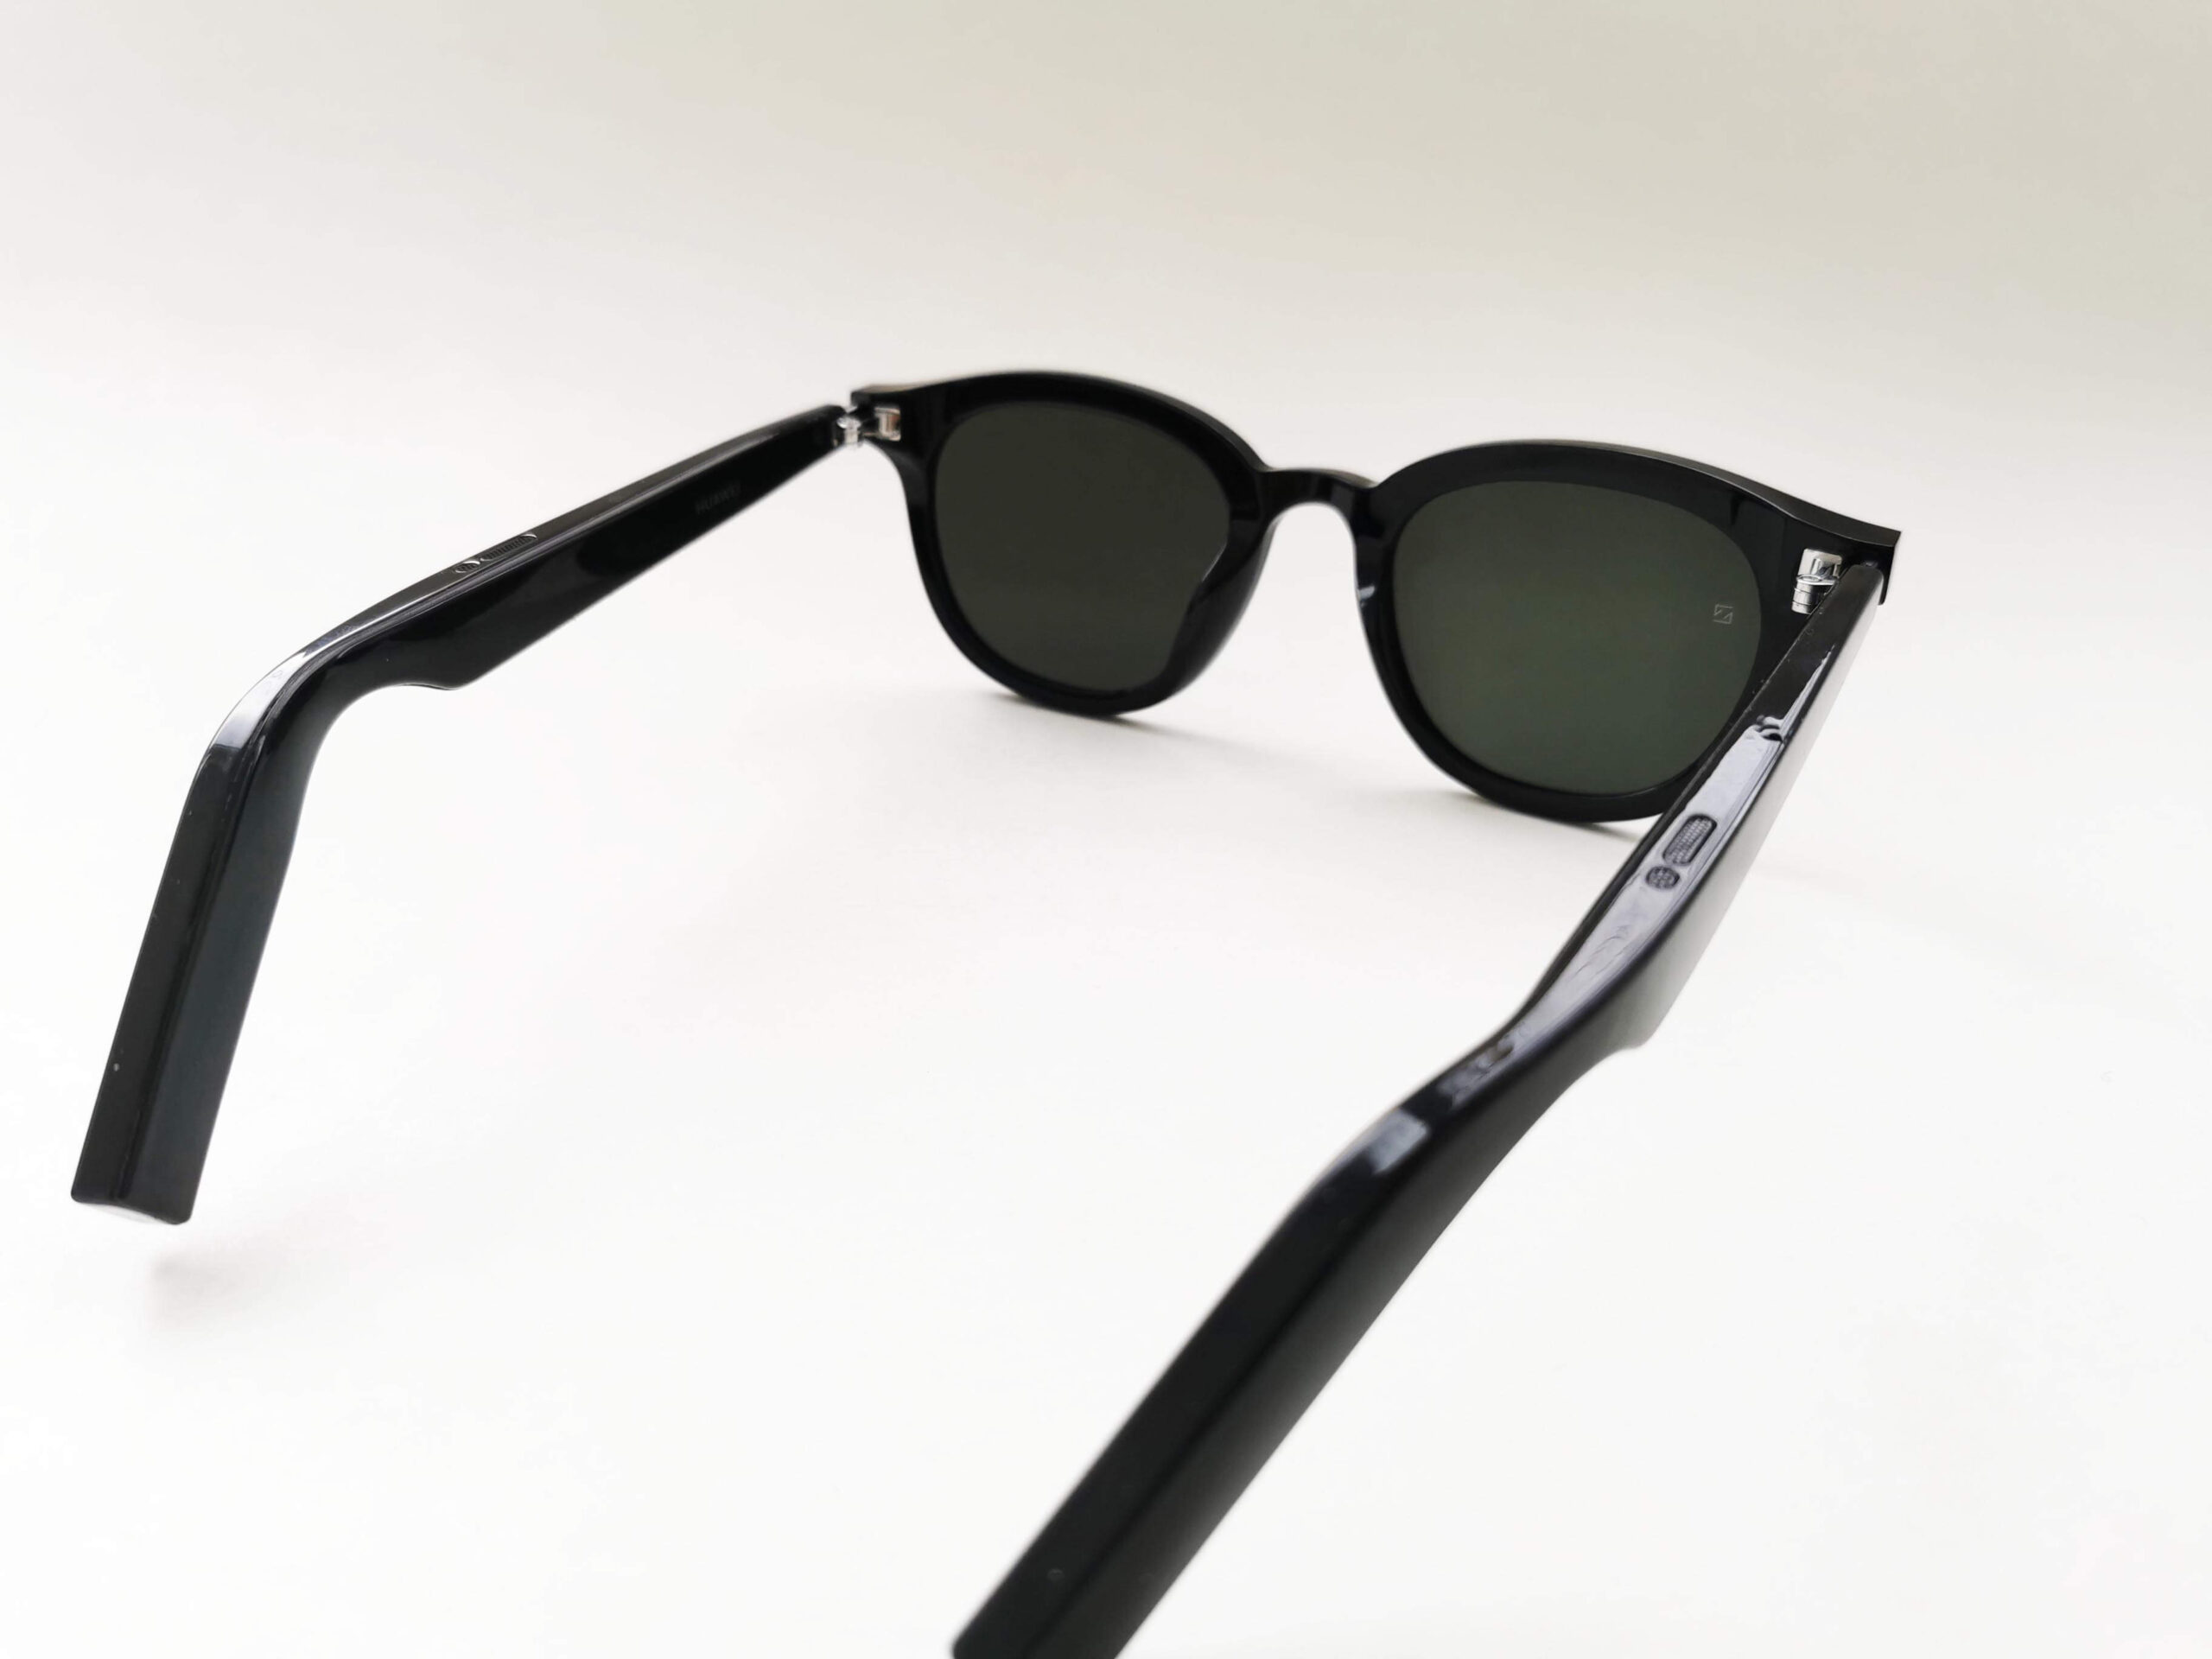 HUAWEI X Gentle Monster Eyewear II Review Romana si Pareri 3